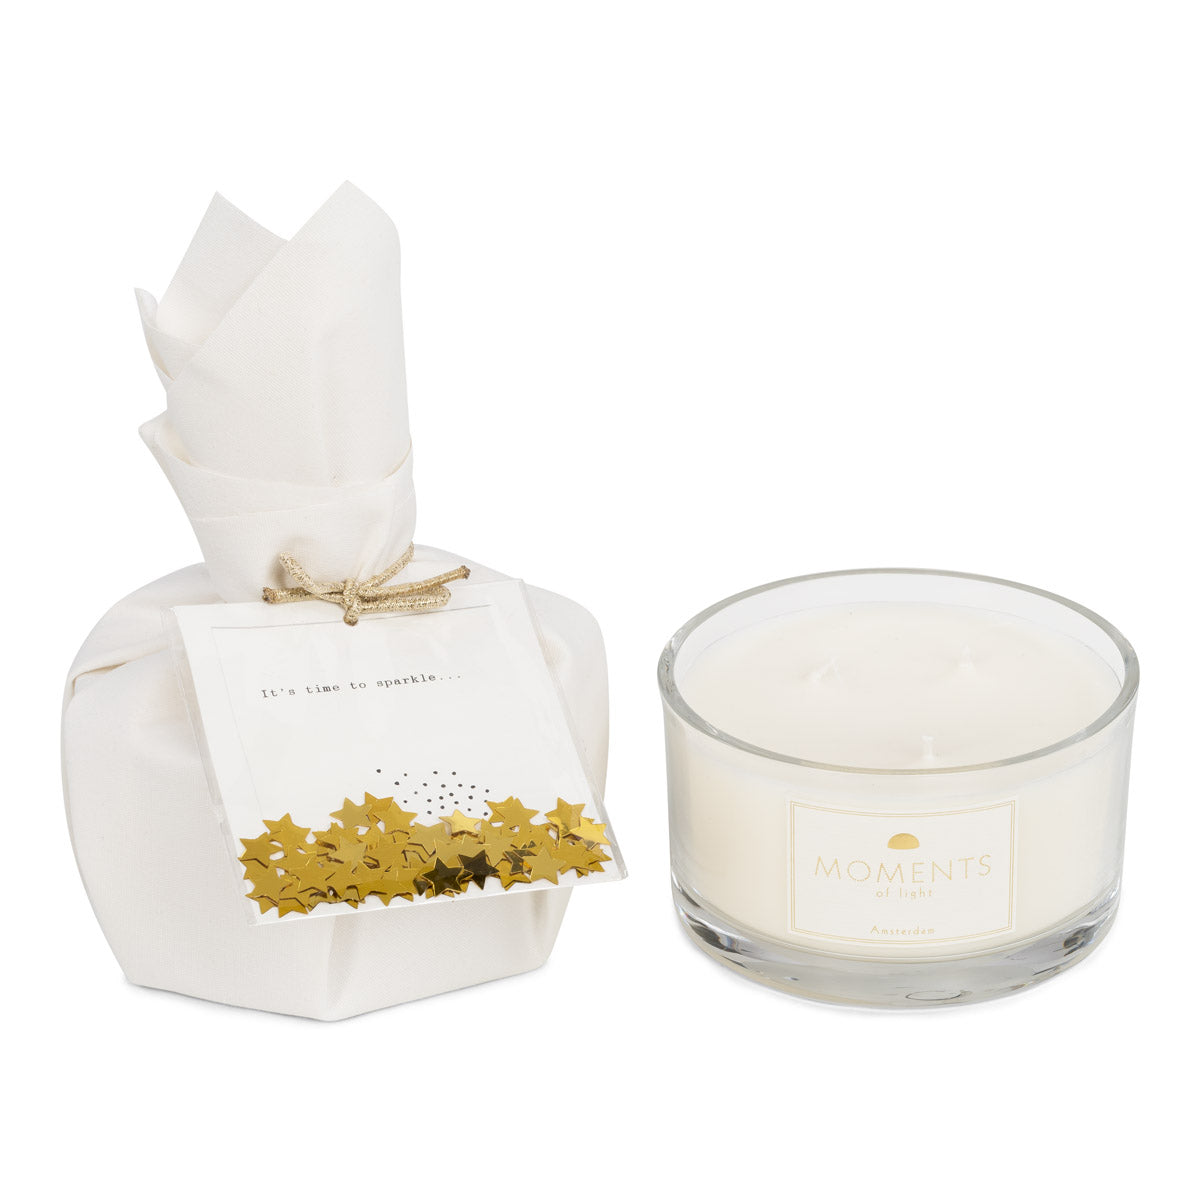 'Moments of Sparkle' Scented Candle